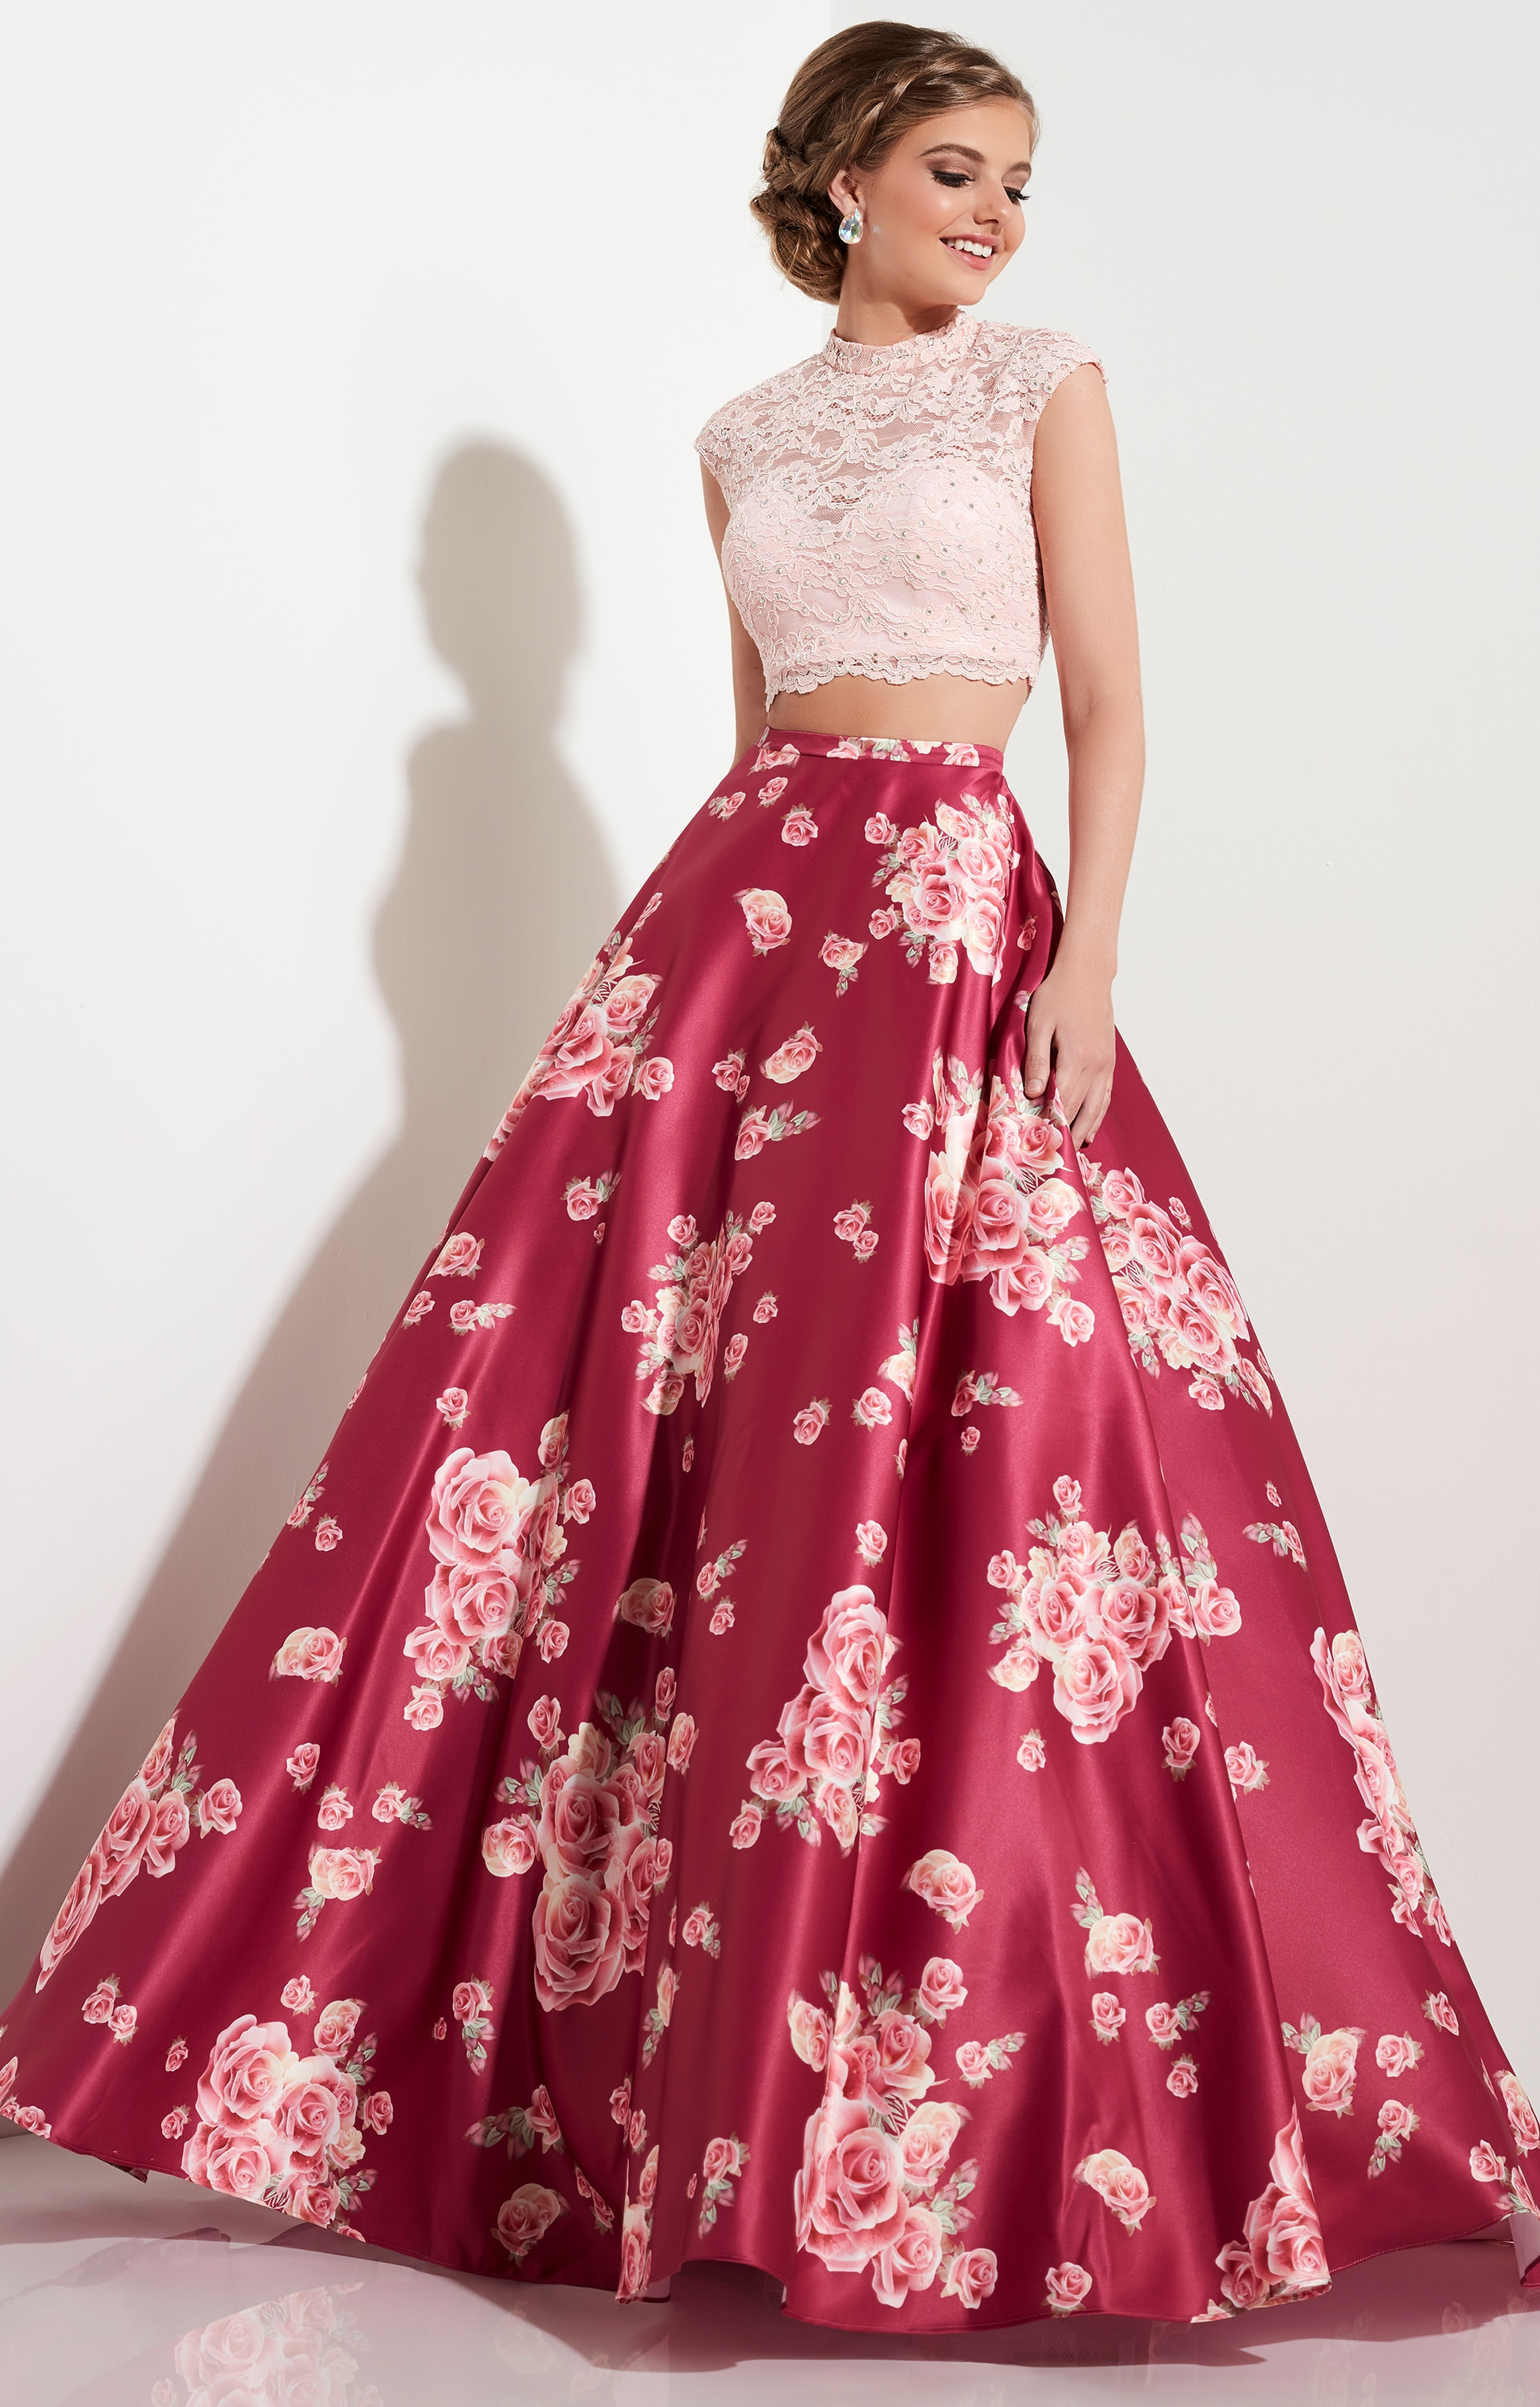 Studio 17 12603 - Cap Sleeve Lace Two Piece with Floral Ballgown ...